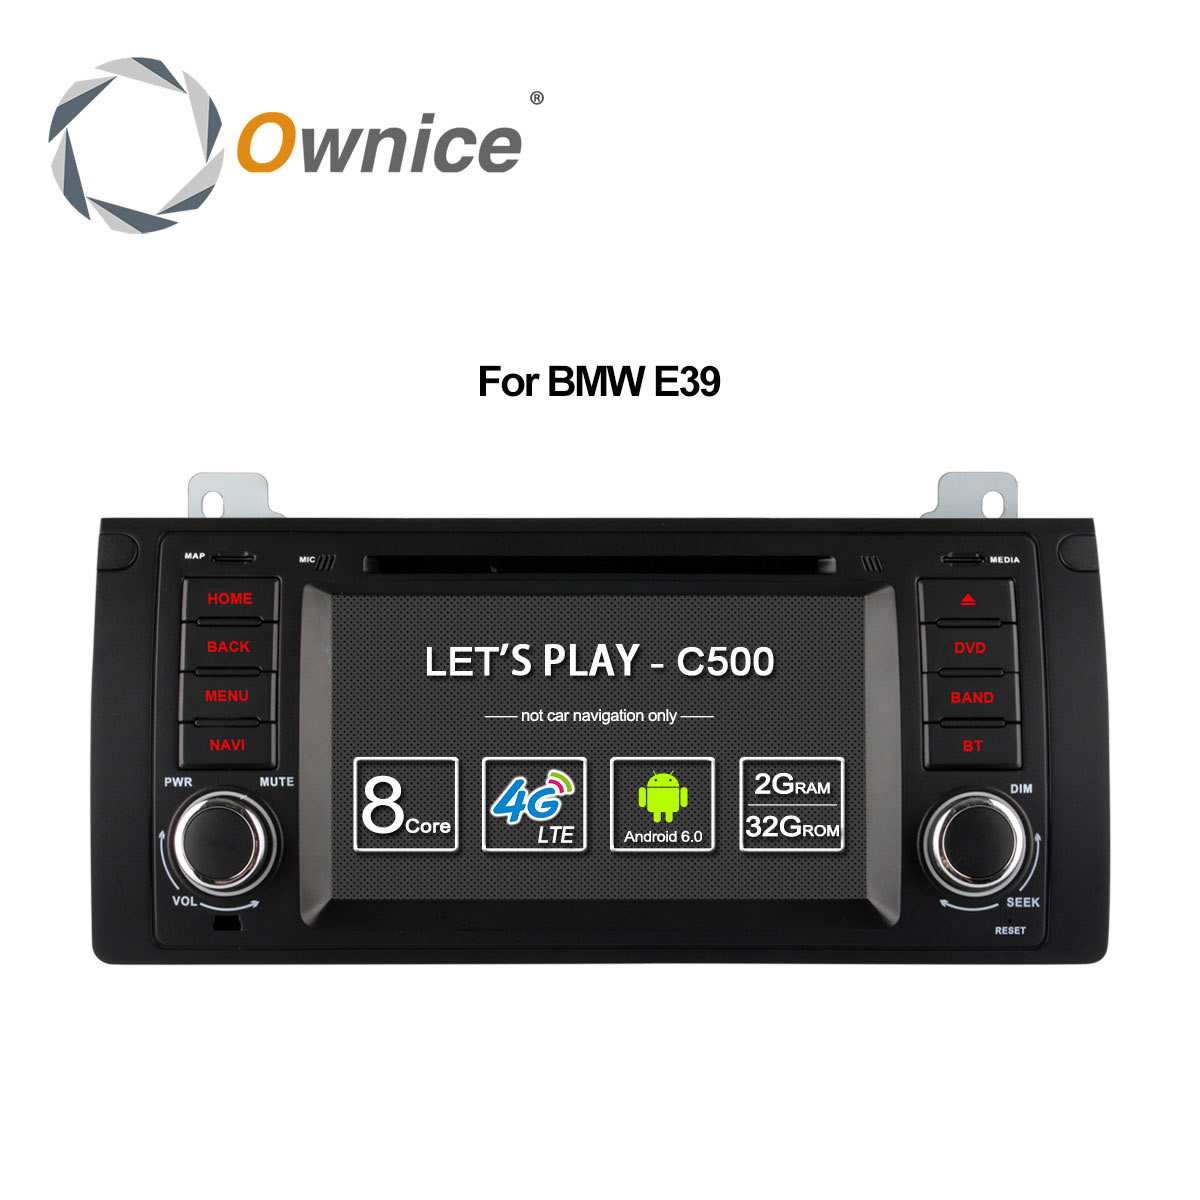 Ownice 4G SIM LTE Android 6.0 Octa Core 32G ROM In Dash Car DVD Player For BMW E39 X5 M5 E38 E53 With Wifi GPS Navi Radio FM image